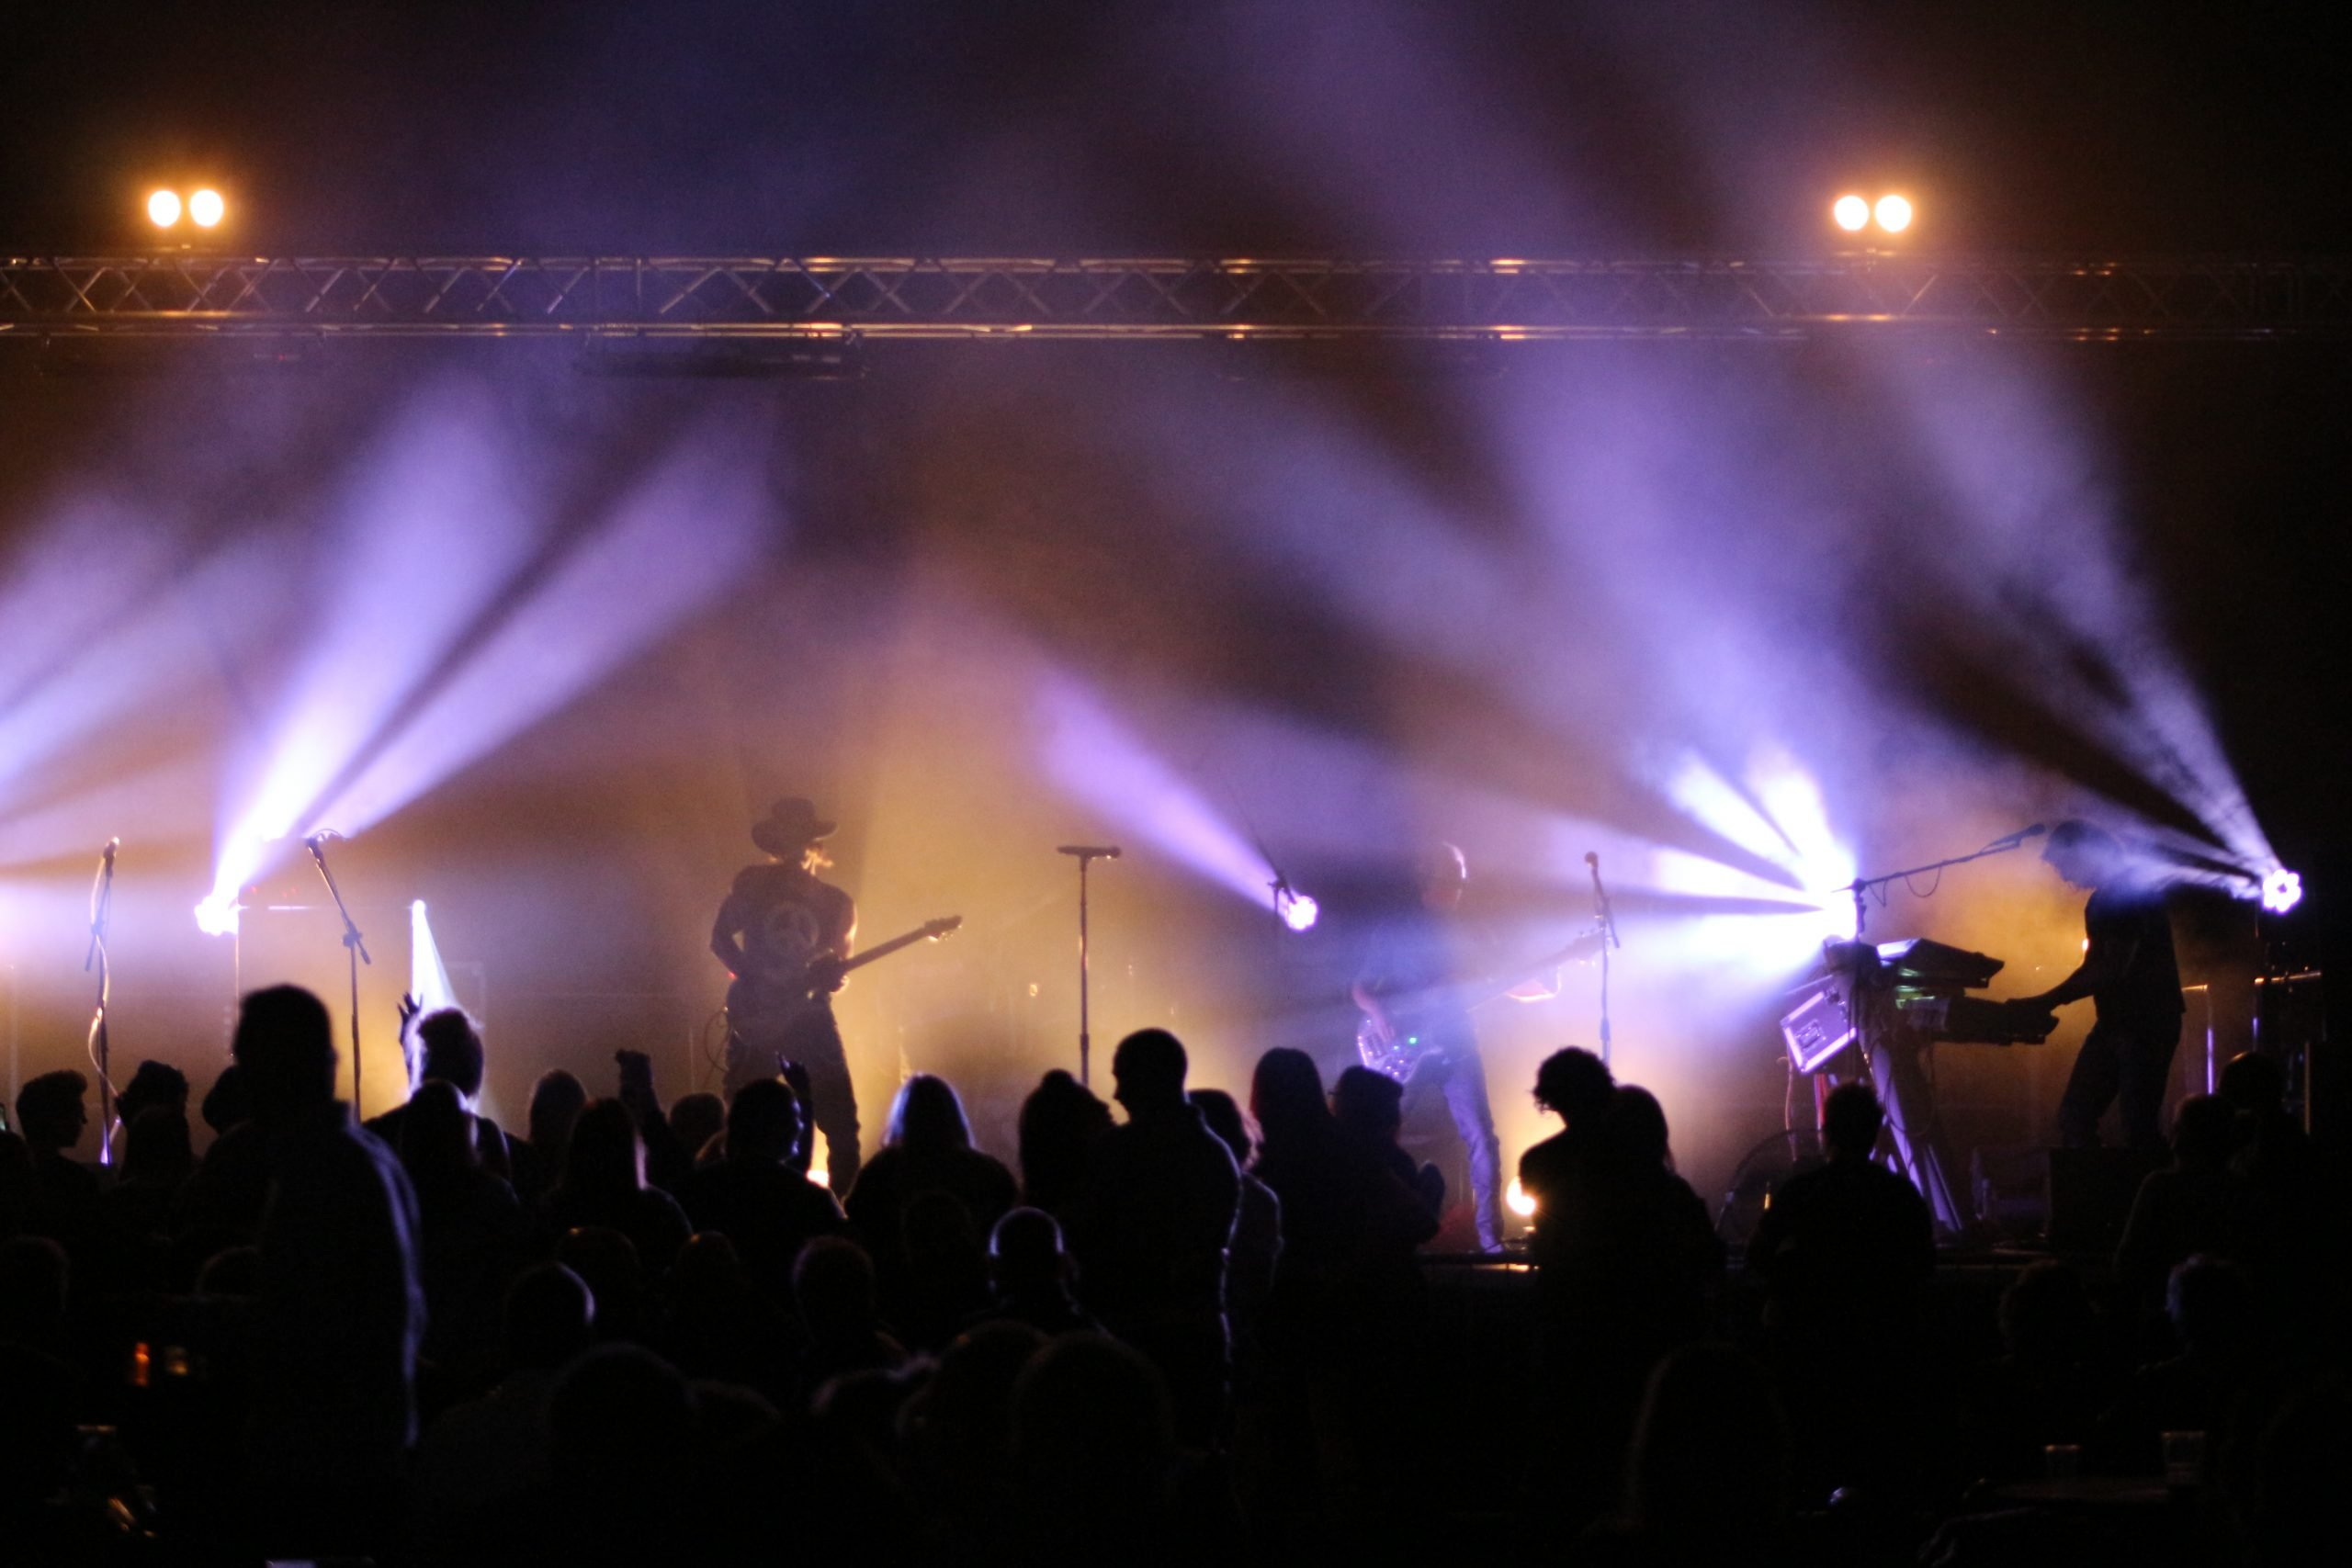 Music event at the Barnsley Metrodome